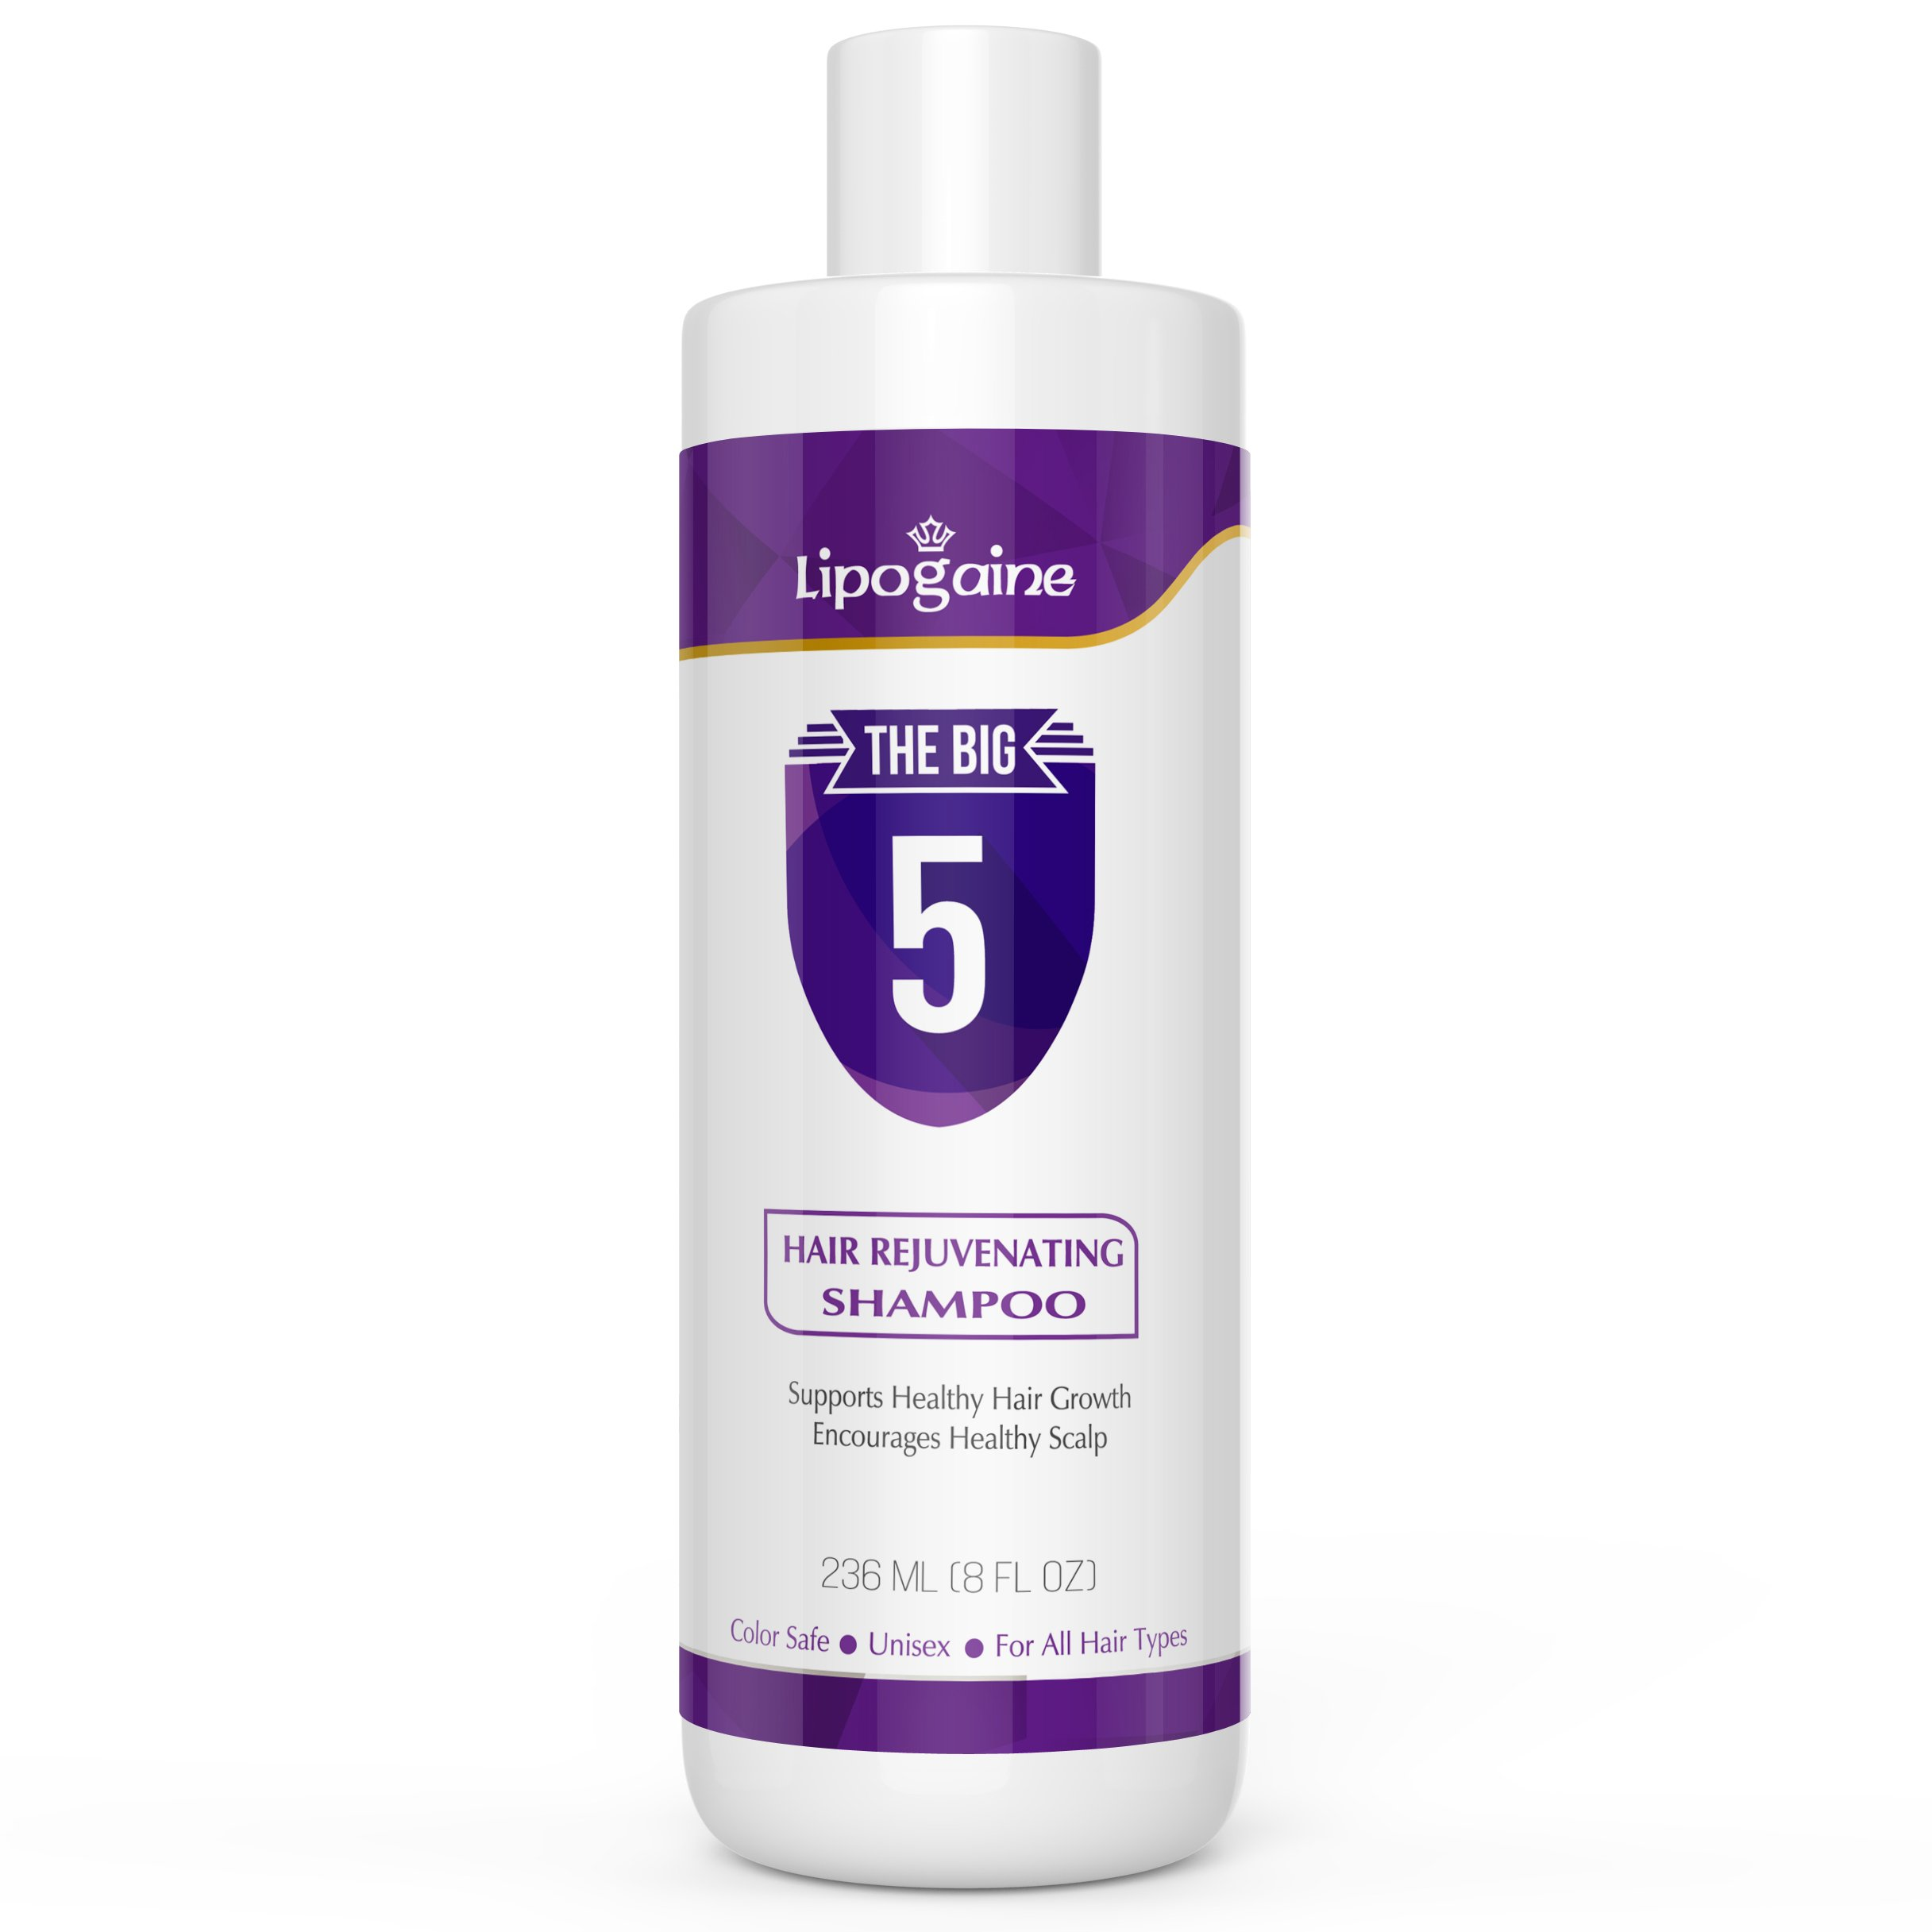 Lipogaine Hair Stimulating Shampoo for Hair Thinning & Breakage, for All Hair Types, Men and Women, Infused With Biotin, Caffeine, Argan Oil, Castor oil and Saw Palmetto (Purple) by Lipogaine